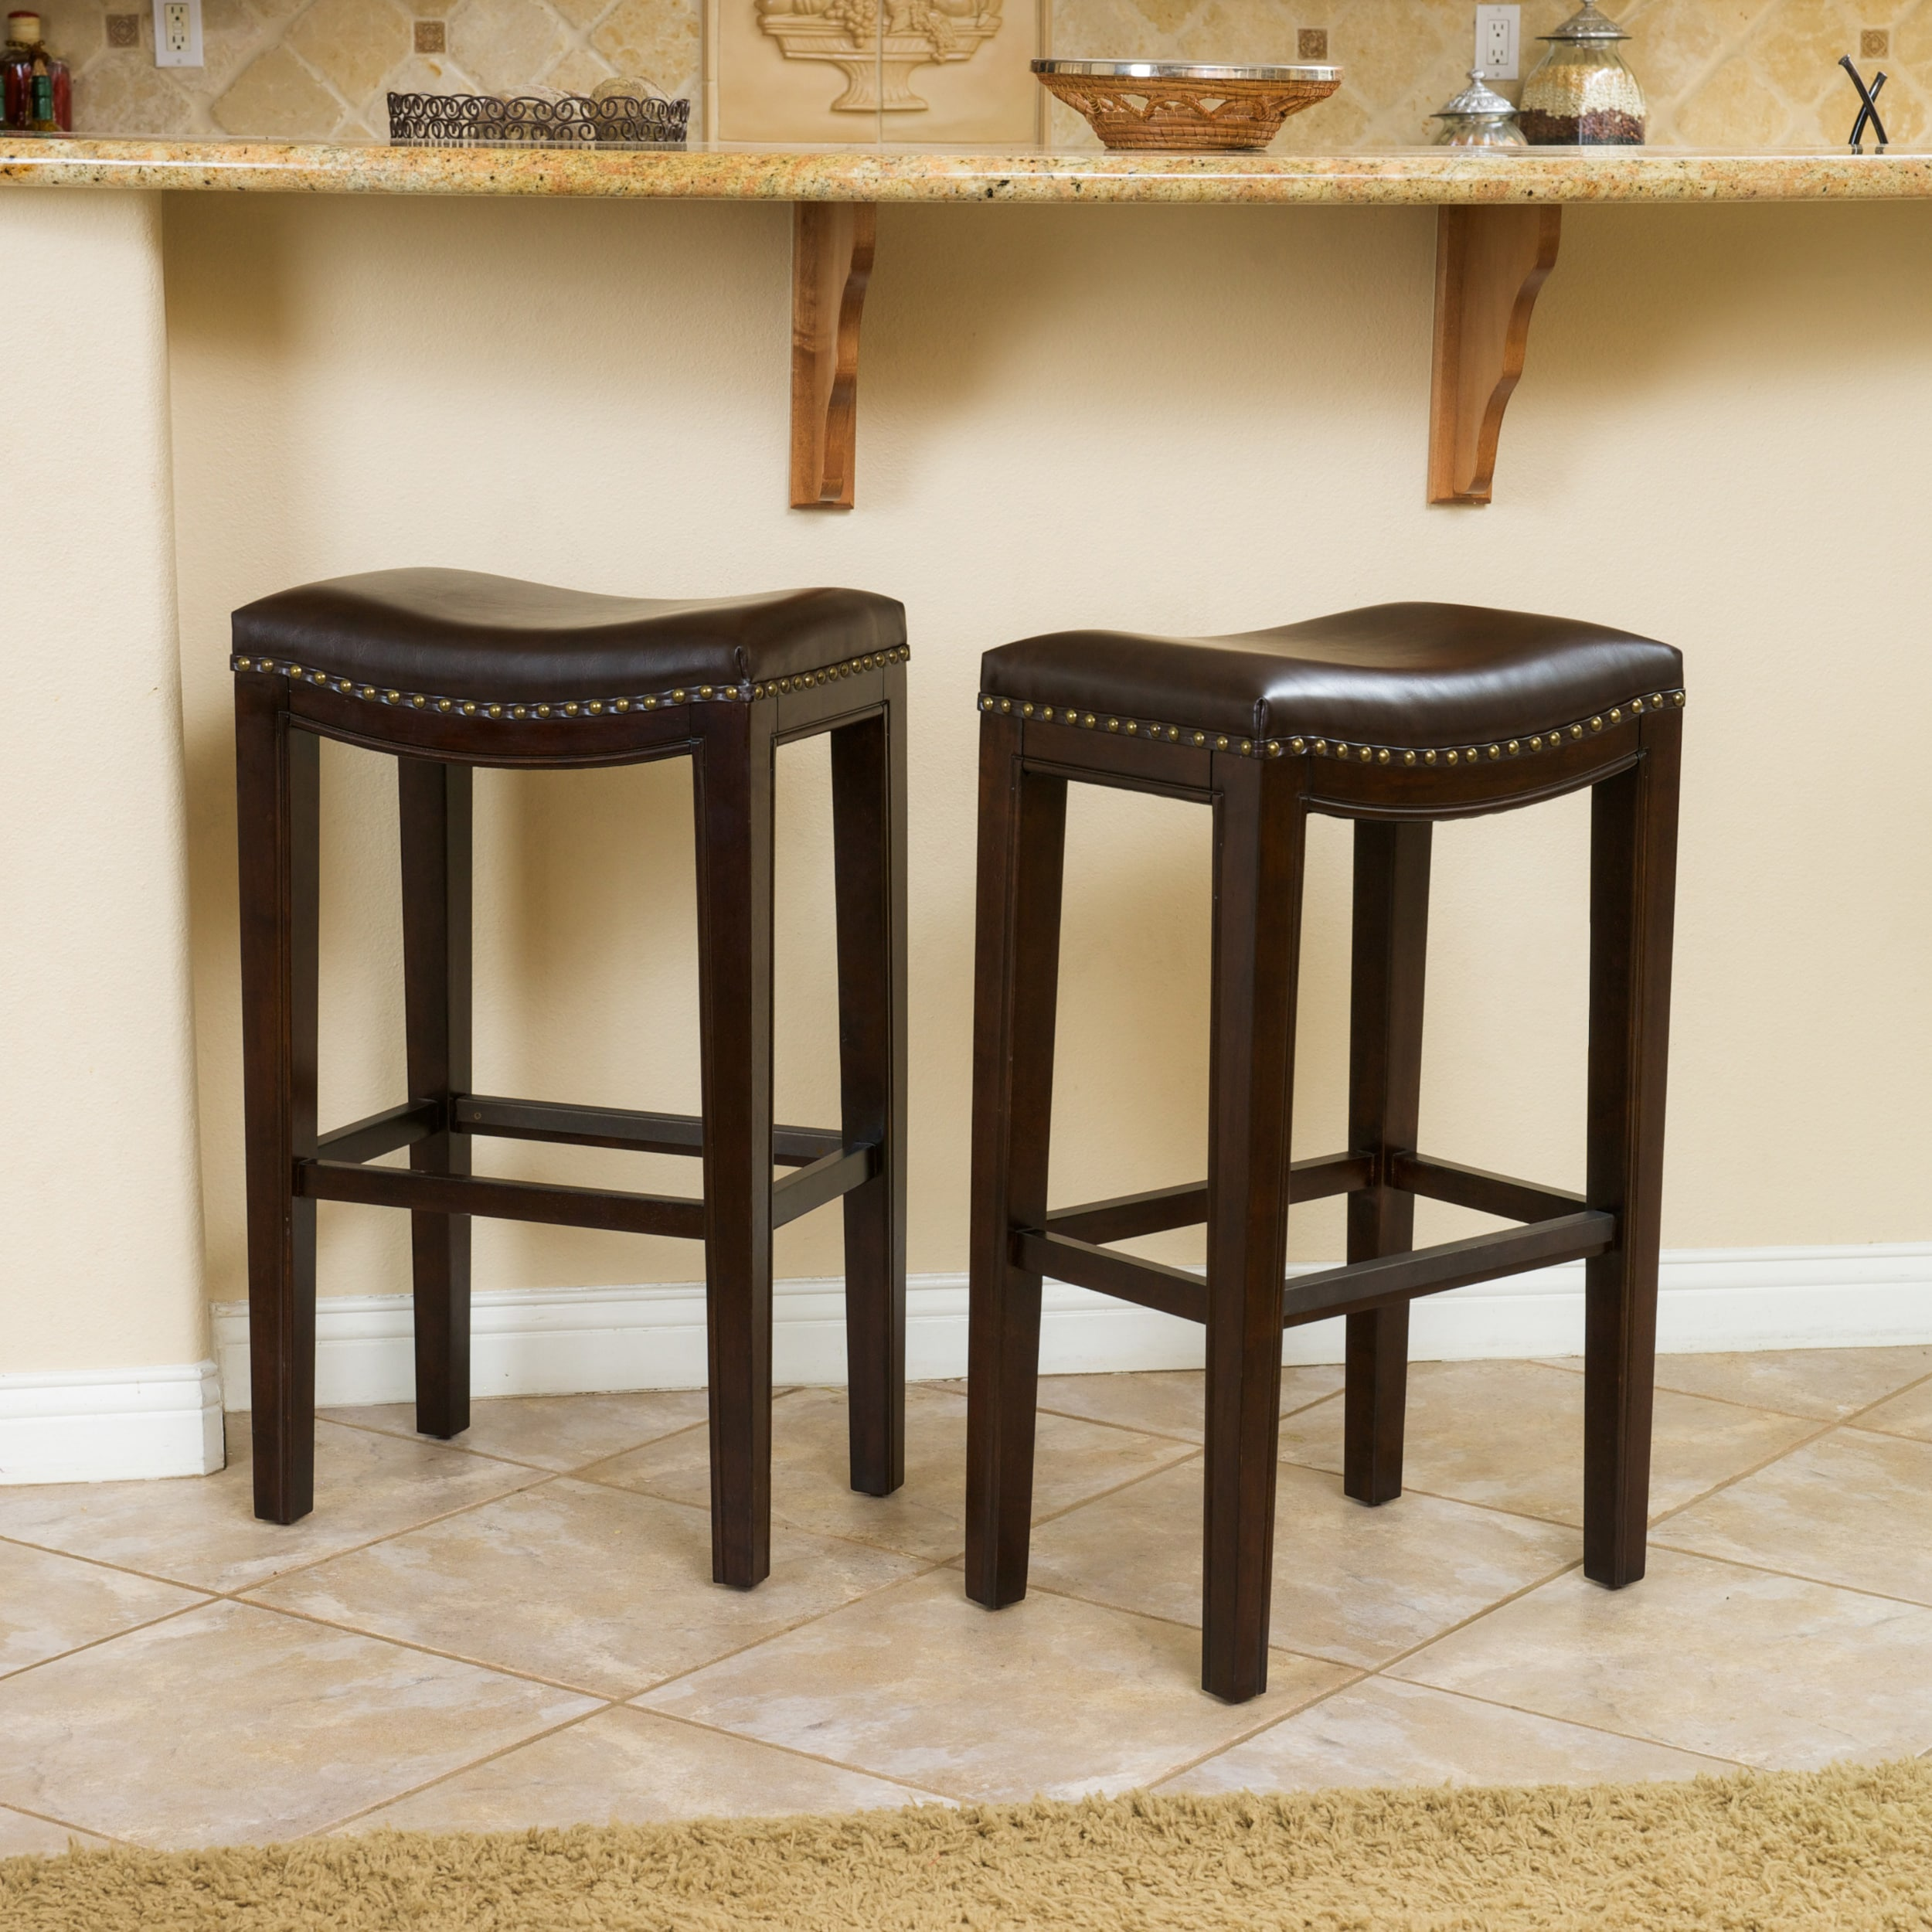 Magnificent Christopher Knight Home Avondale 30 Brown Bonded Leather Backless Bar Stool Set Of 2 Inzonedesignstudio Interior Chair Design Inzonedesignstudiocom